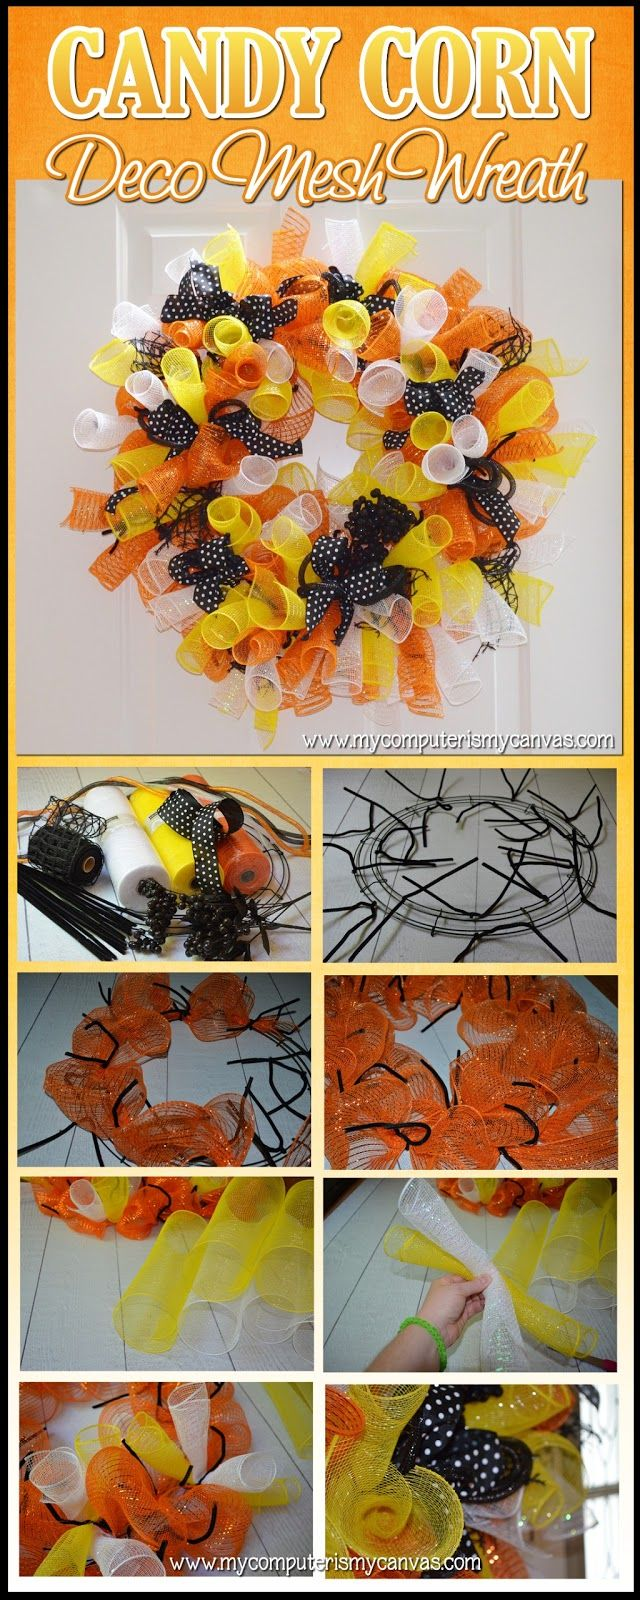 How to Make a Candy Corn Deco Mesh Wreath for Halloween. #mycomputerismycanvas